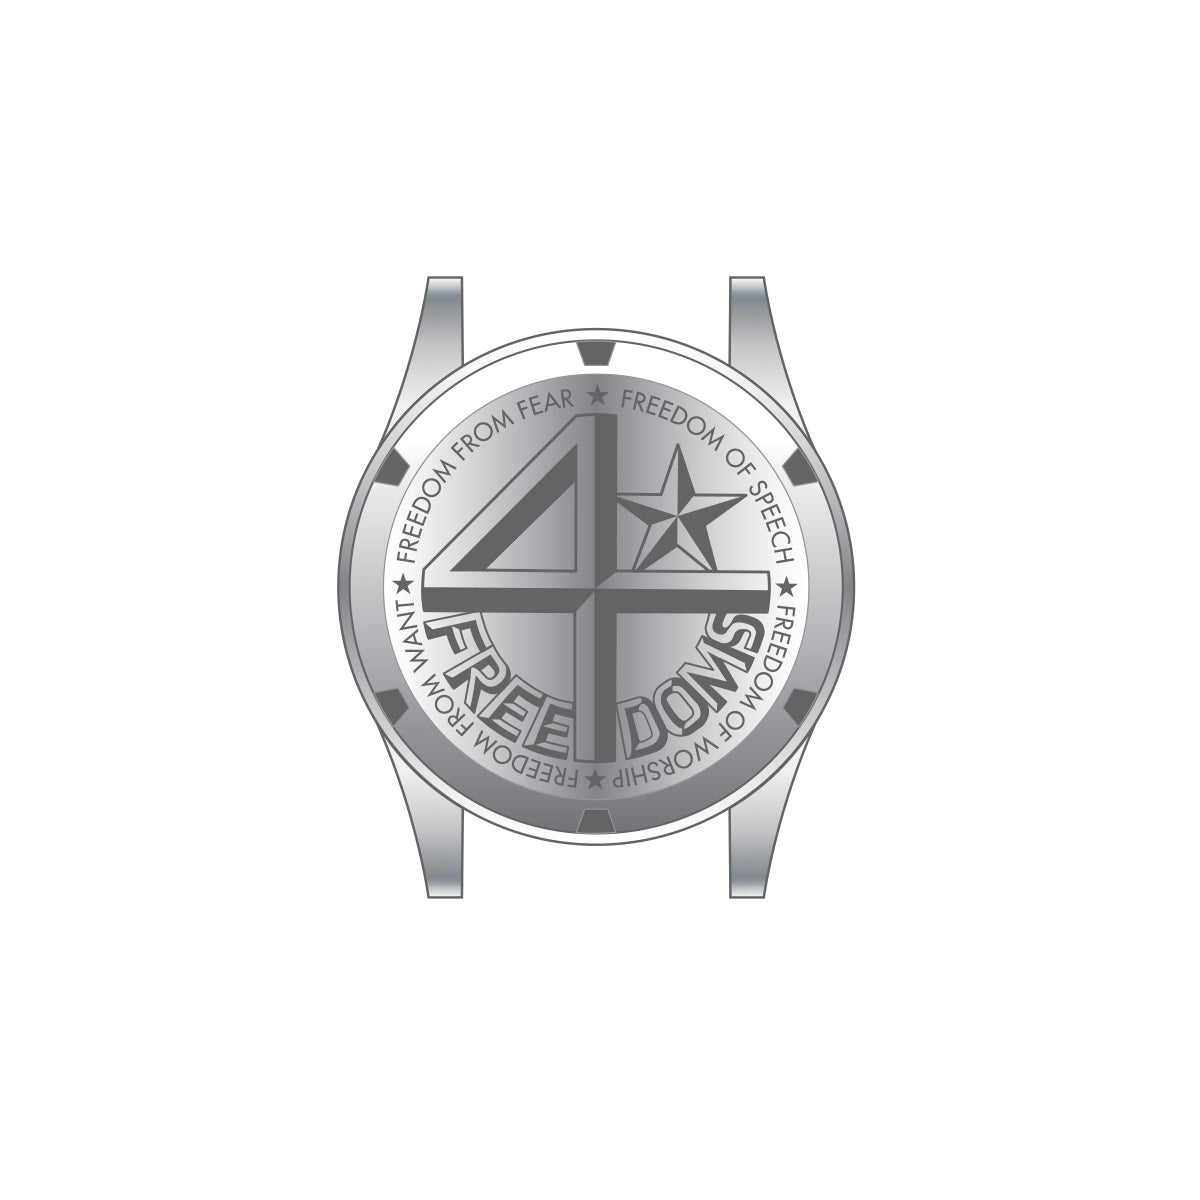 40N6.2.9M 40Nine 43mm 4Freedoms Watch